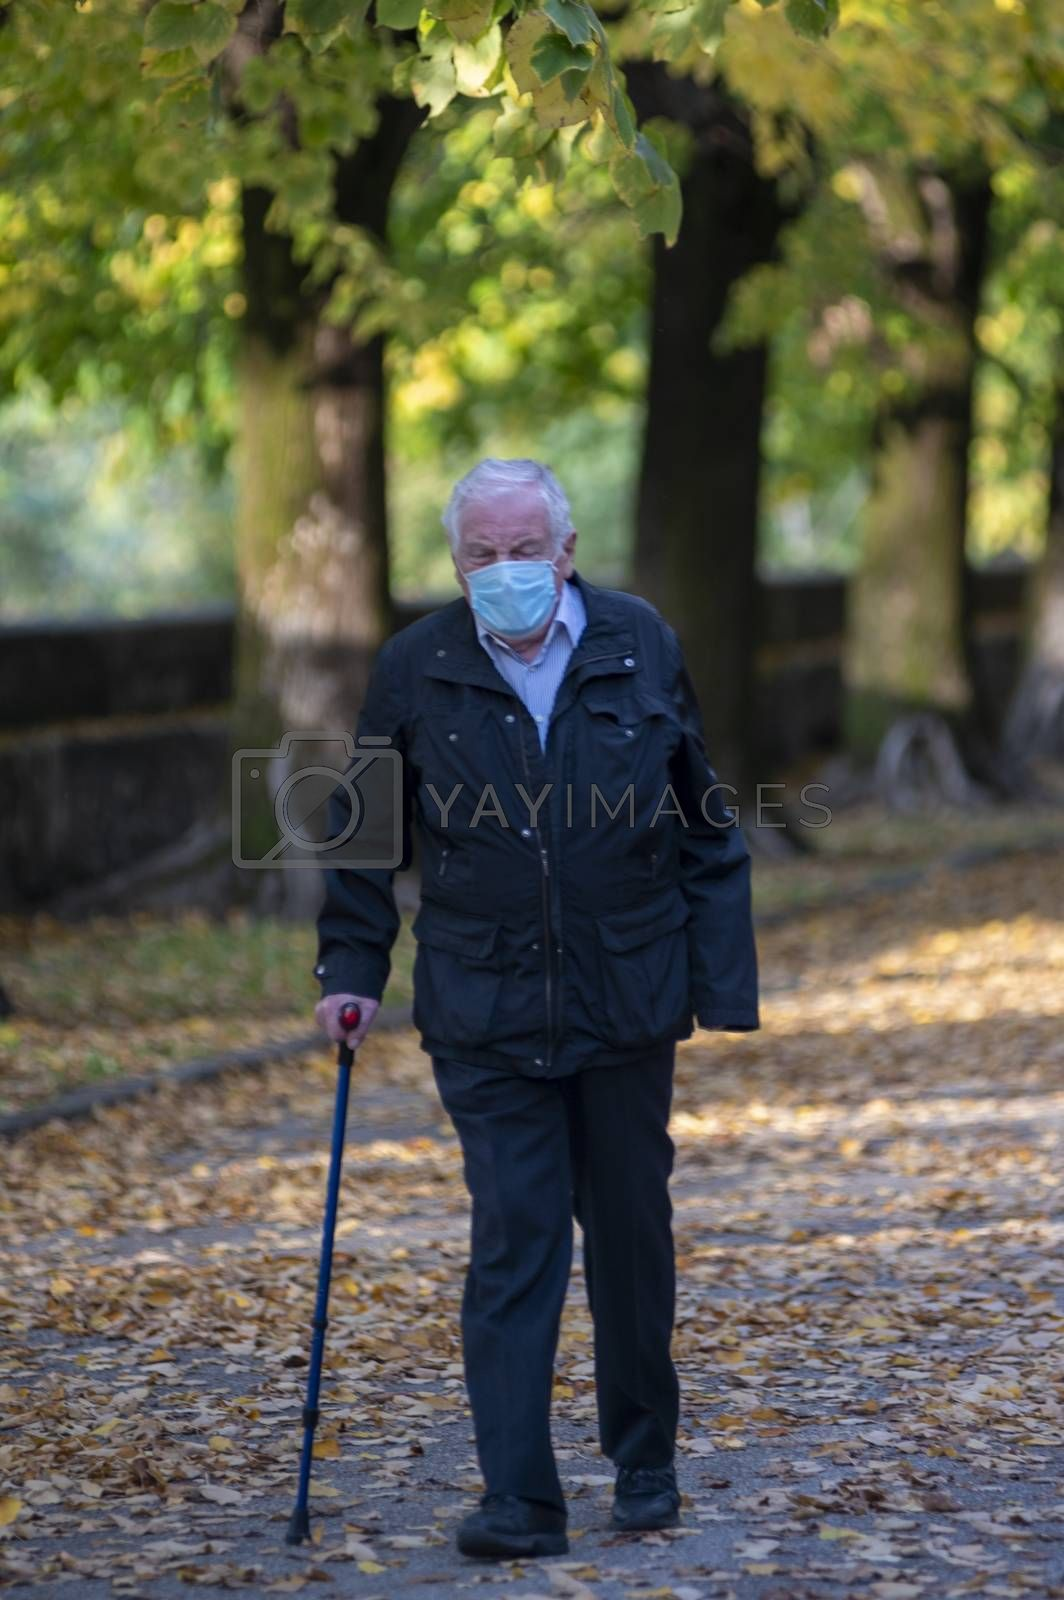 terni,italy october 27 2020:anxious man walking with cane and wearing medical mask